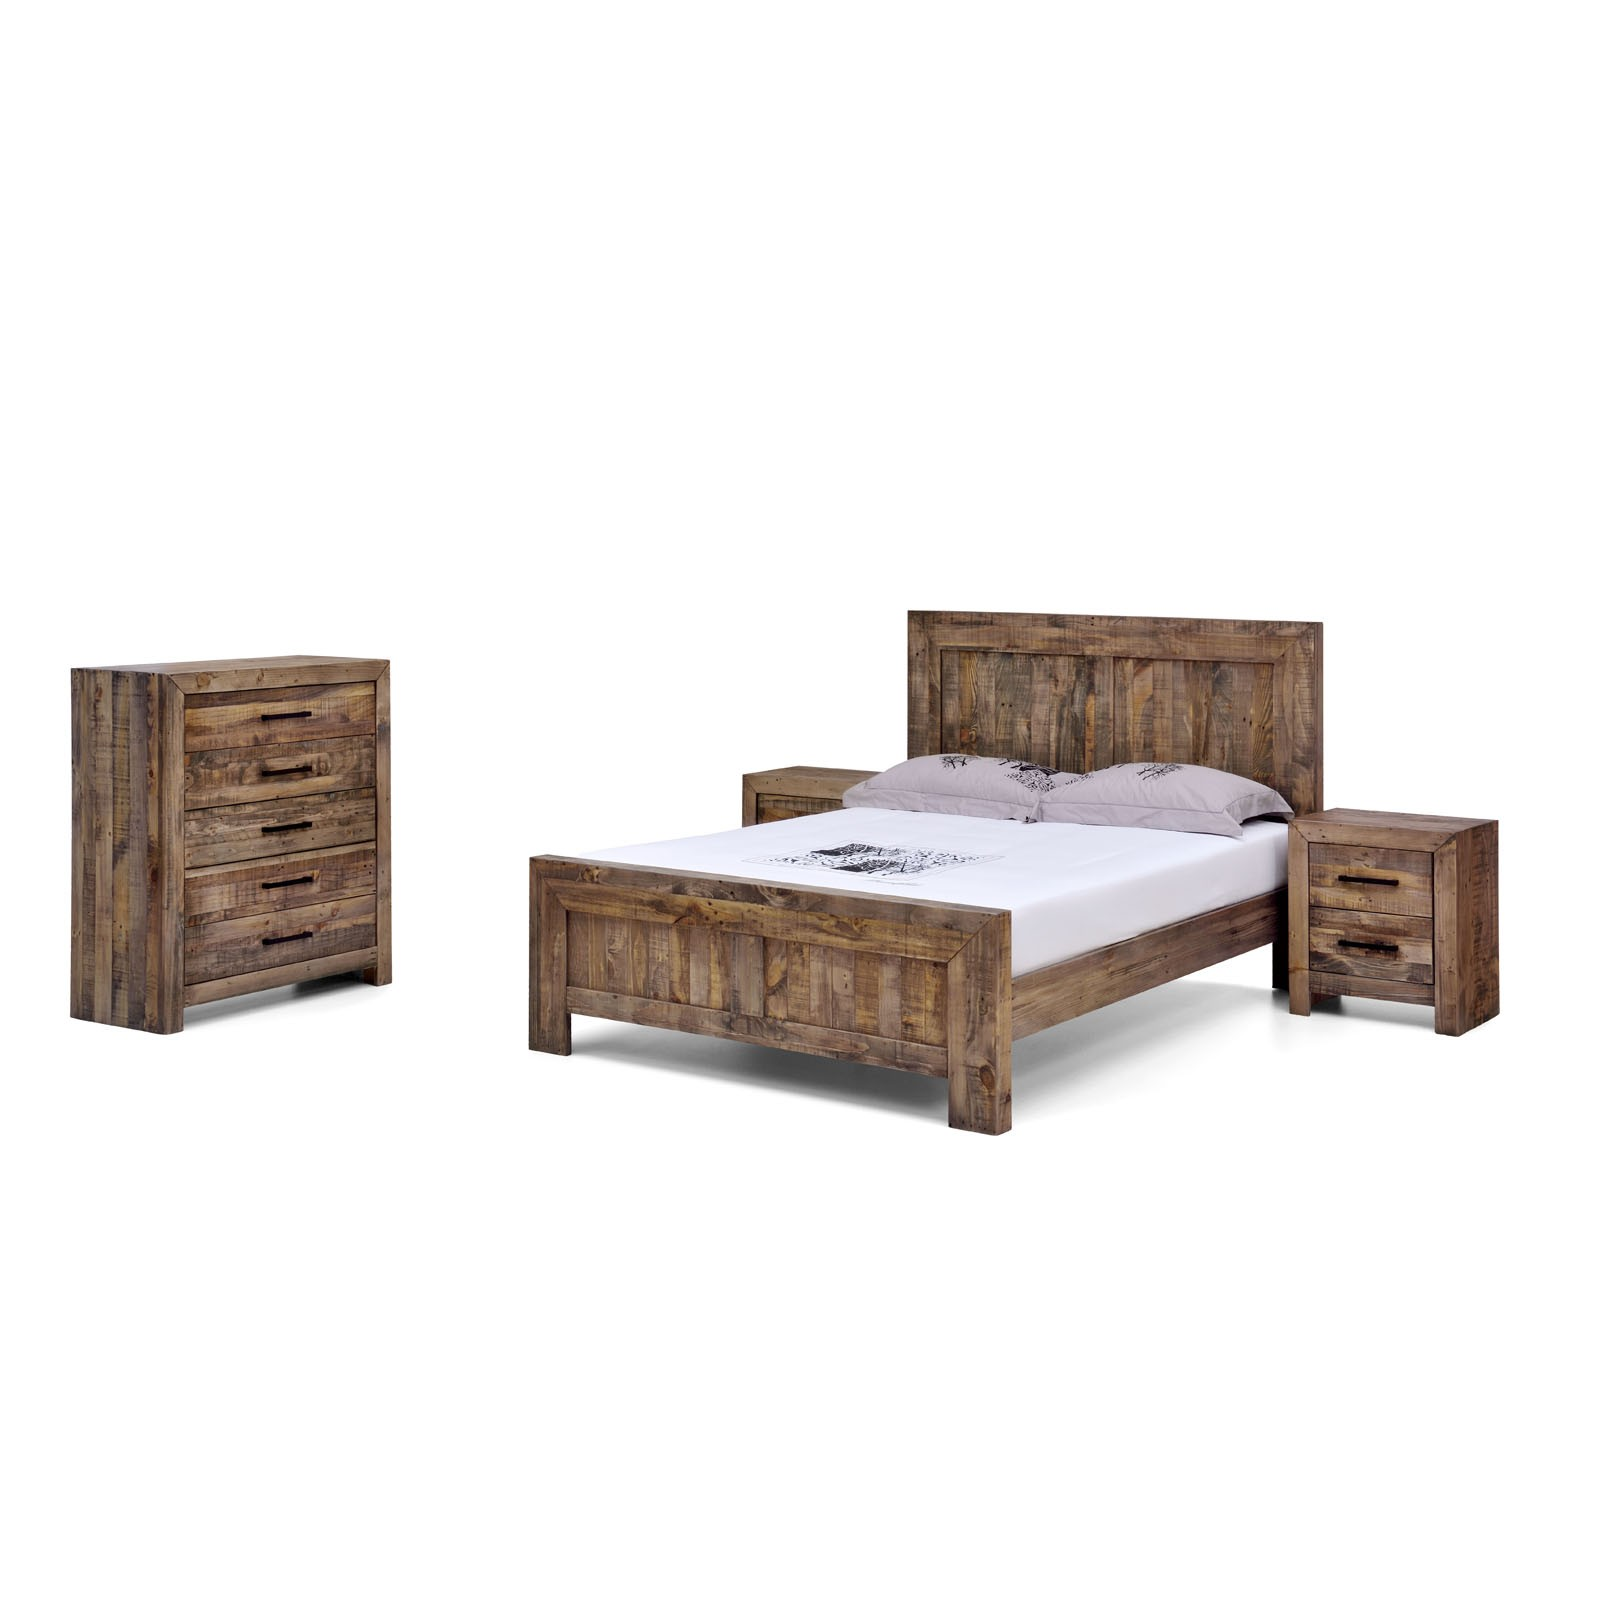 boston recycled solid pine rustic timber queen size bed frame. Black Bedroom Furniture Sets. Home Design Ideas